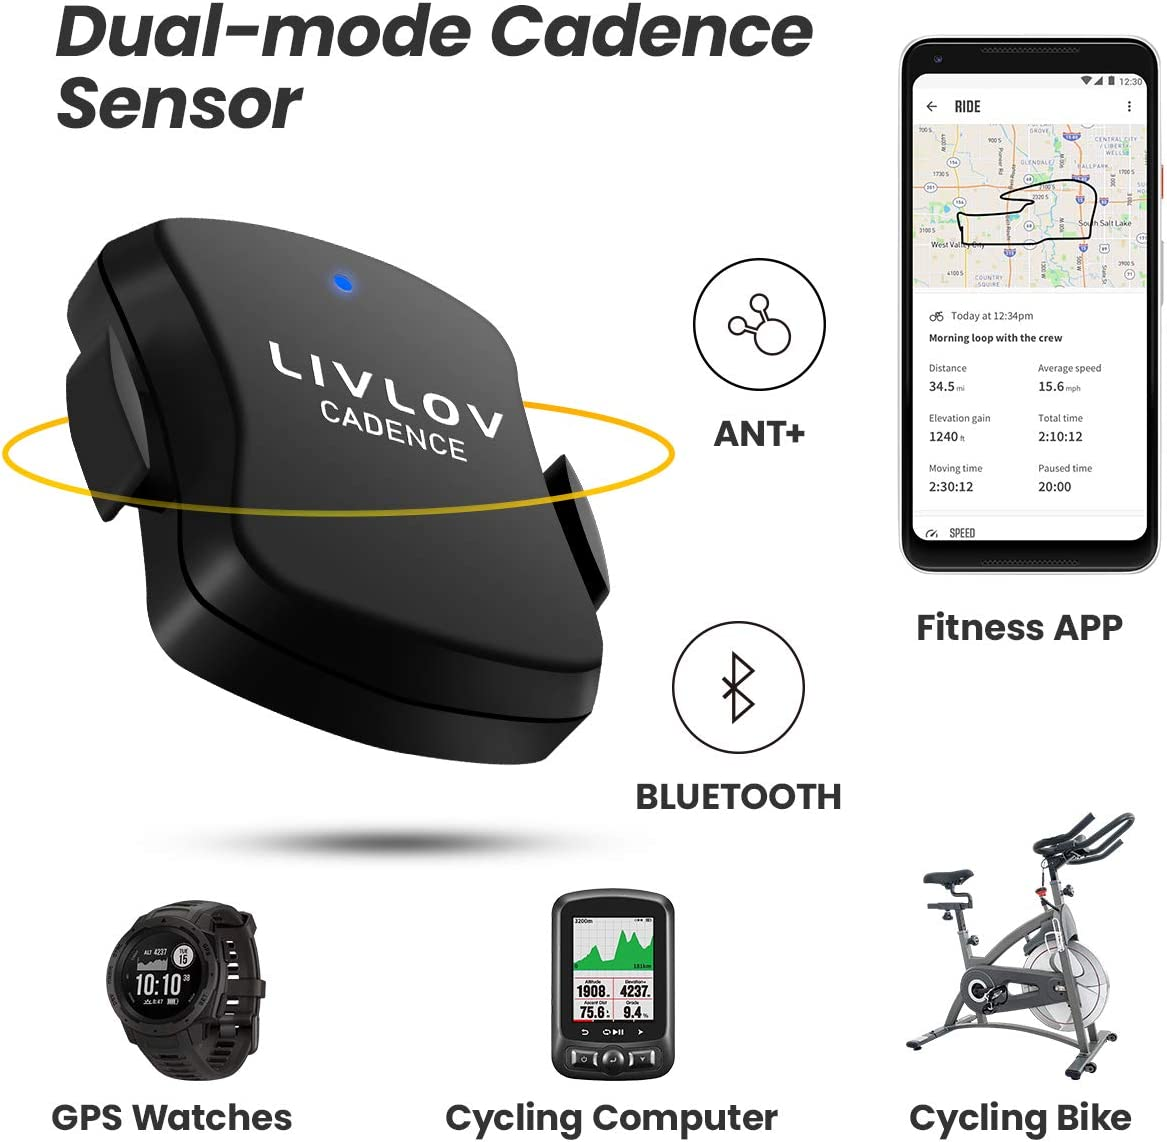 LIVLOV V4 Cycling Cadence Sensor Bluetooth /& ANT Cadence Sensor Wireless Bicycle Cadence Sensor IP67 Waterproof for Zwift Wahoo Elite HRV Endomondo Peloton Compatible with Cycling Computers